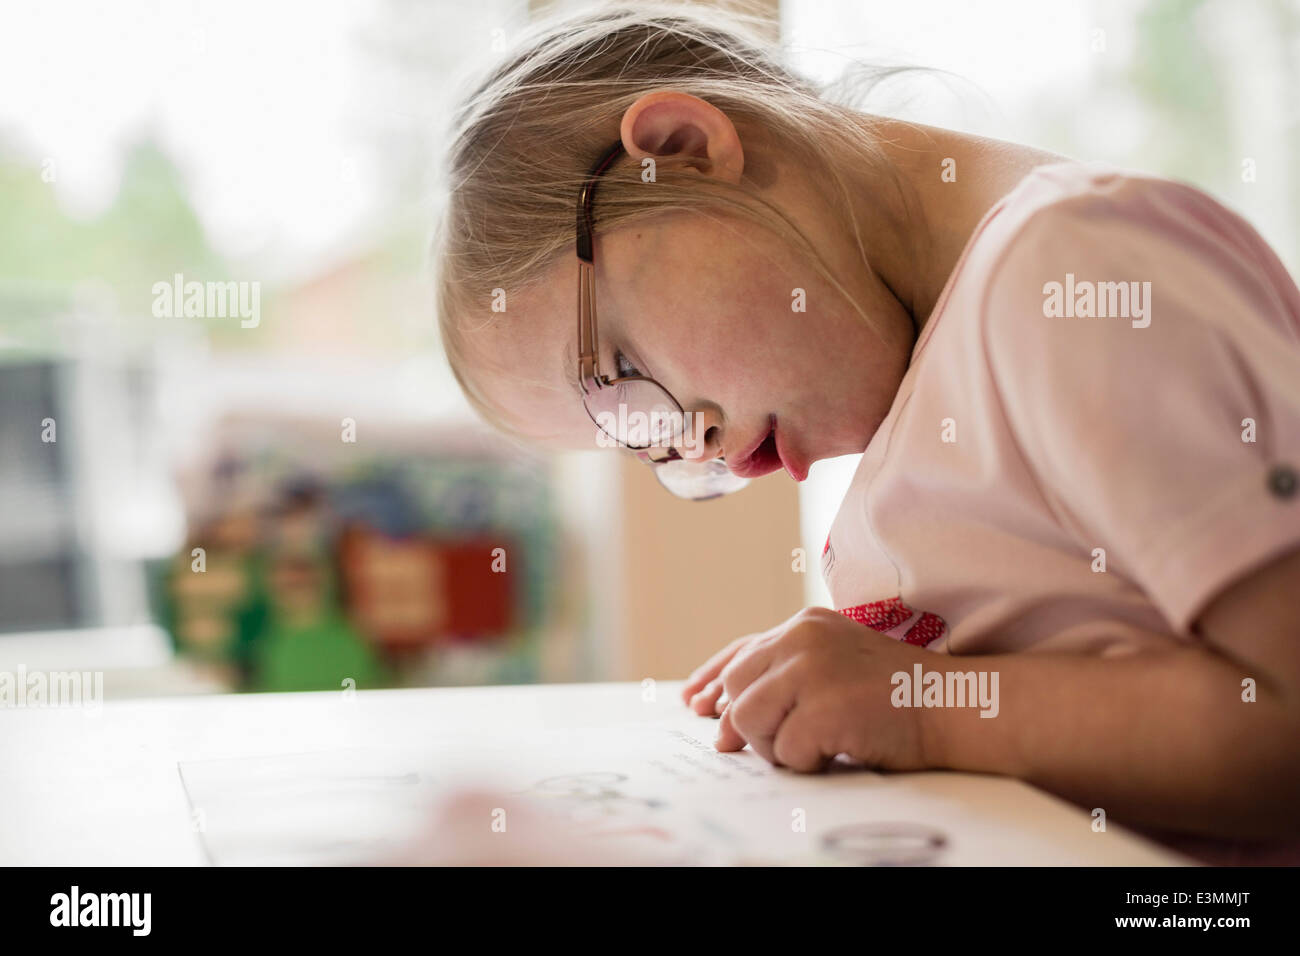 Girl with down syndrome studying at table - Stock Image